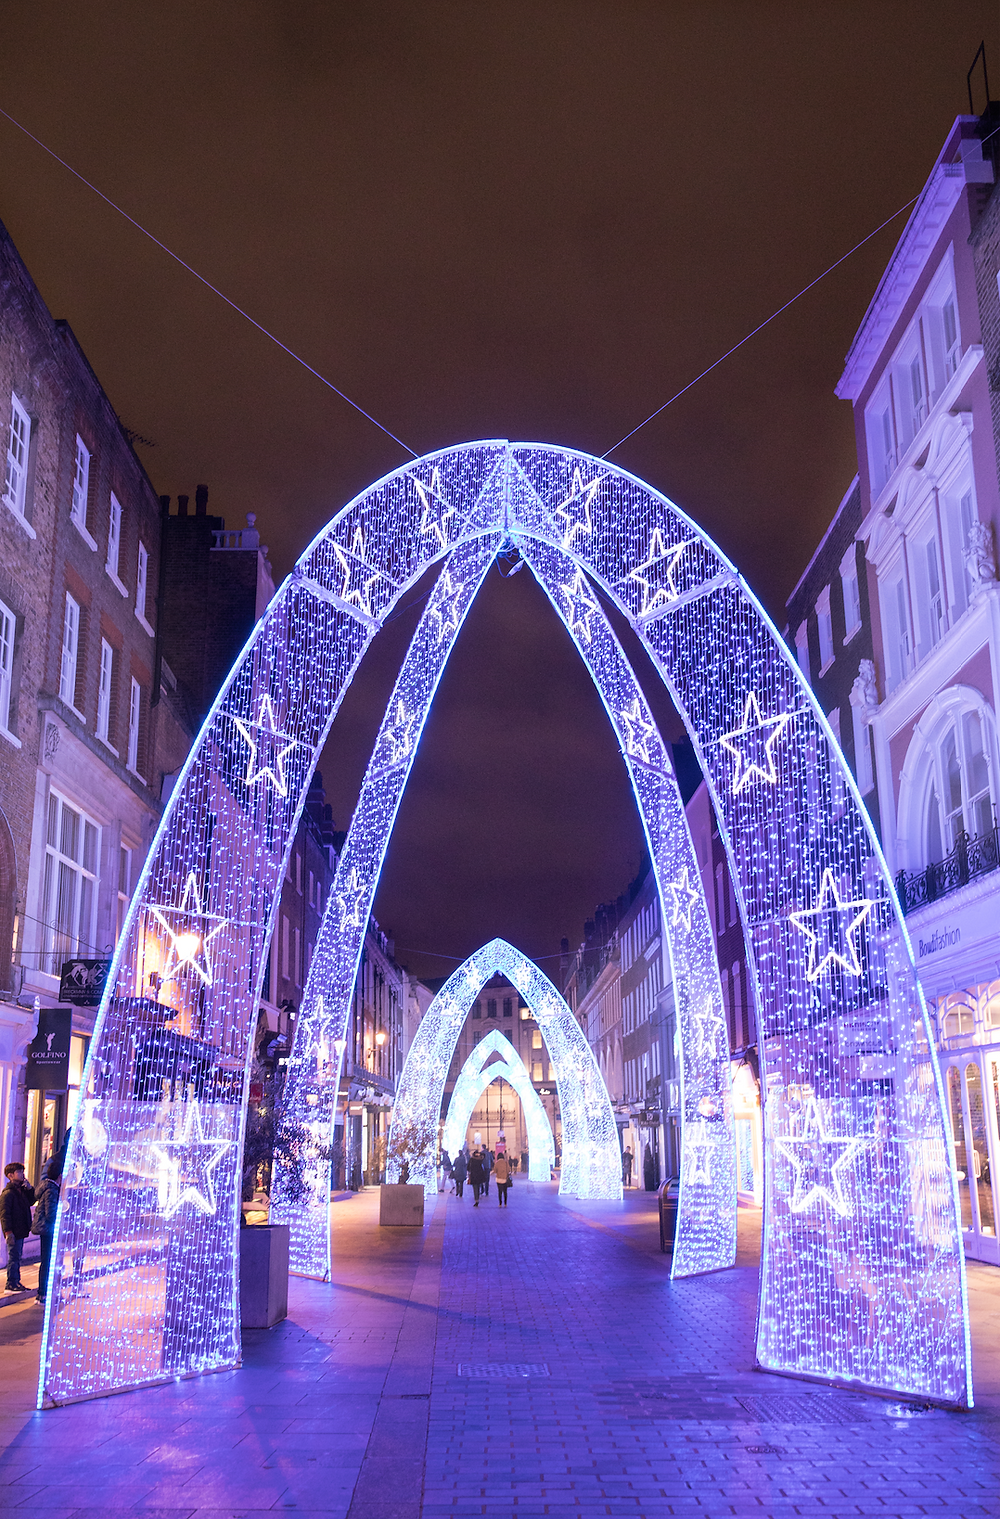 City Streets decorated in Festive lights